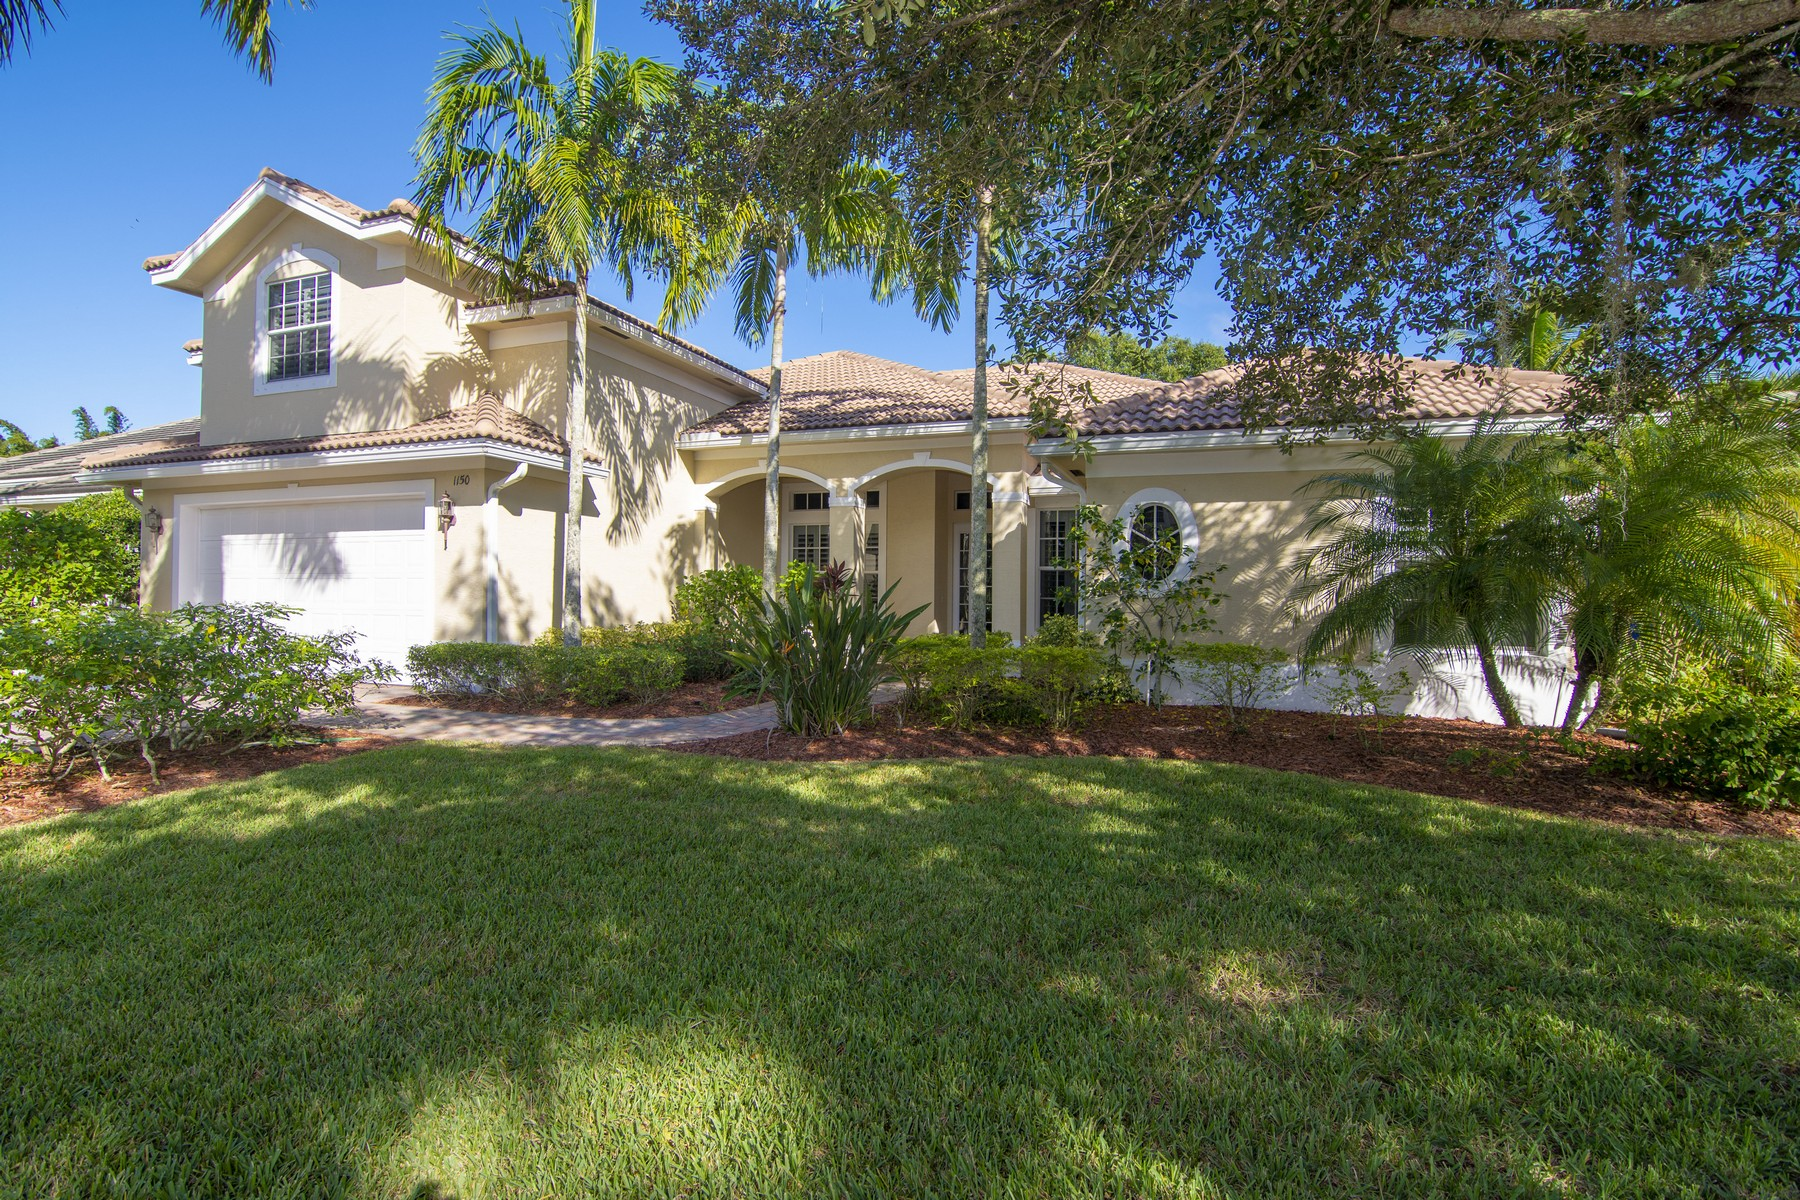 Single Family Homes for Sale at Beautifully Appointed Four Bedroom Pool Home 1150 Buckhead Drive SW Vero Beach, Florida 32968 United States